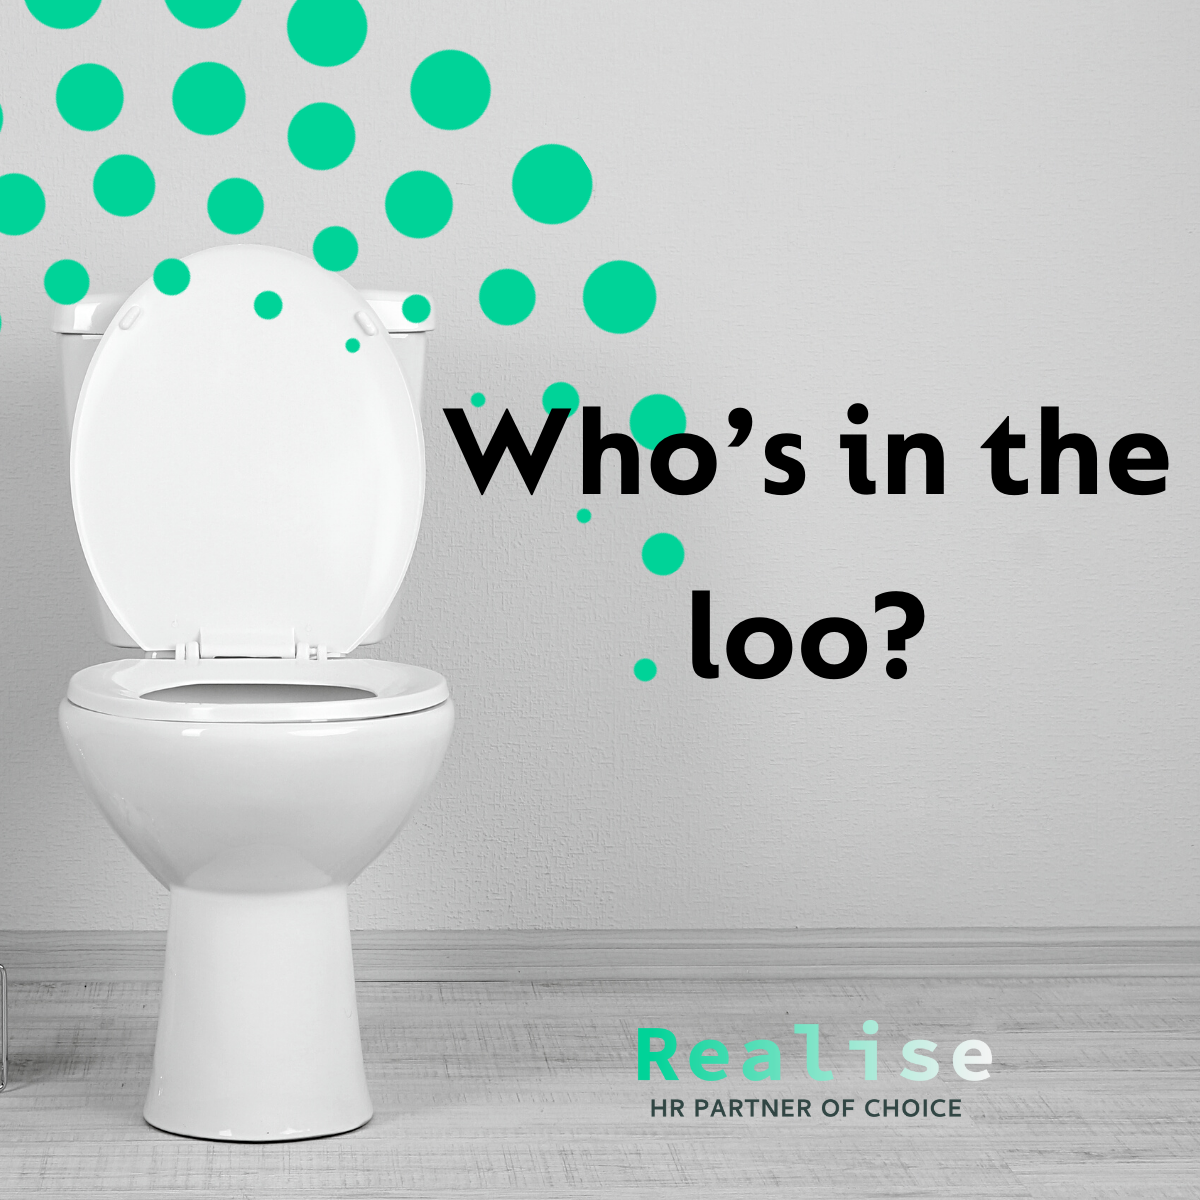 Thumbnail image or logo for the Who's in the loo? event